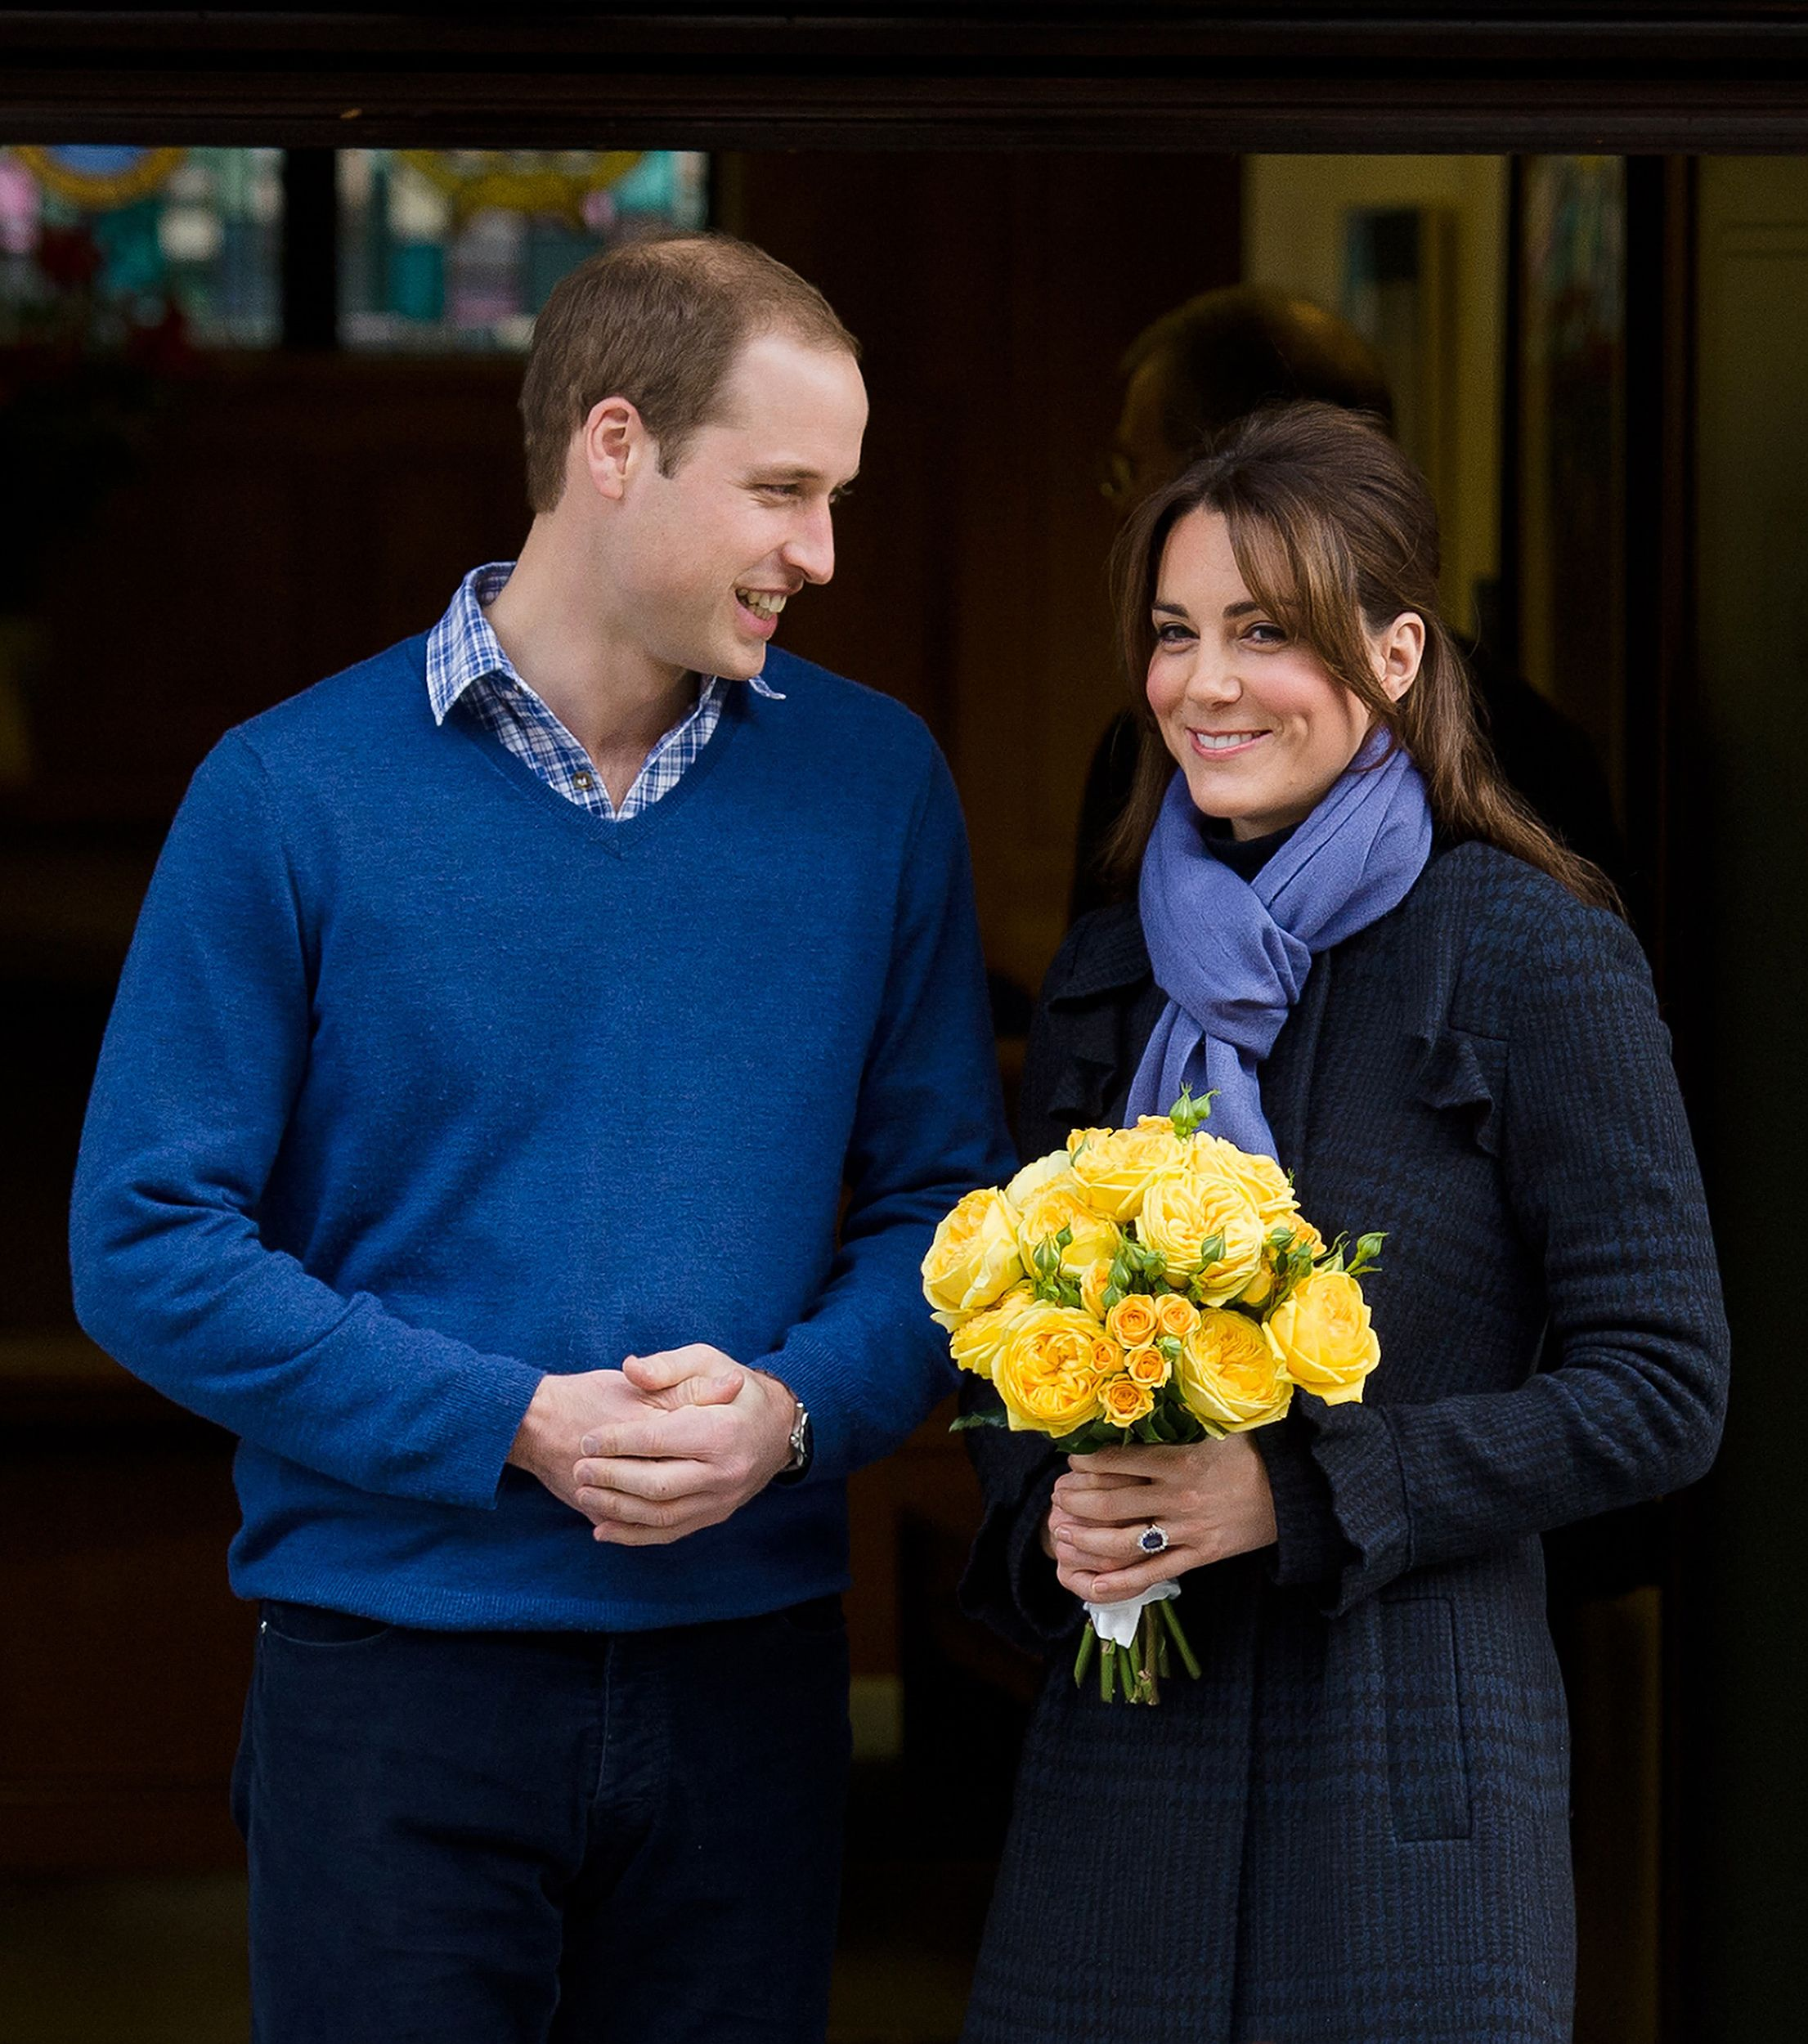 When doting Prince William led his wife from the hospital, just after they announced she was pregnant. via @stylelist